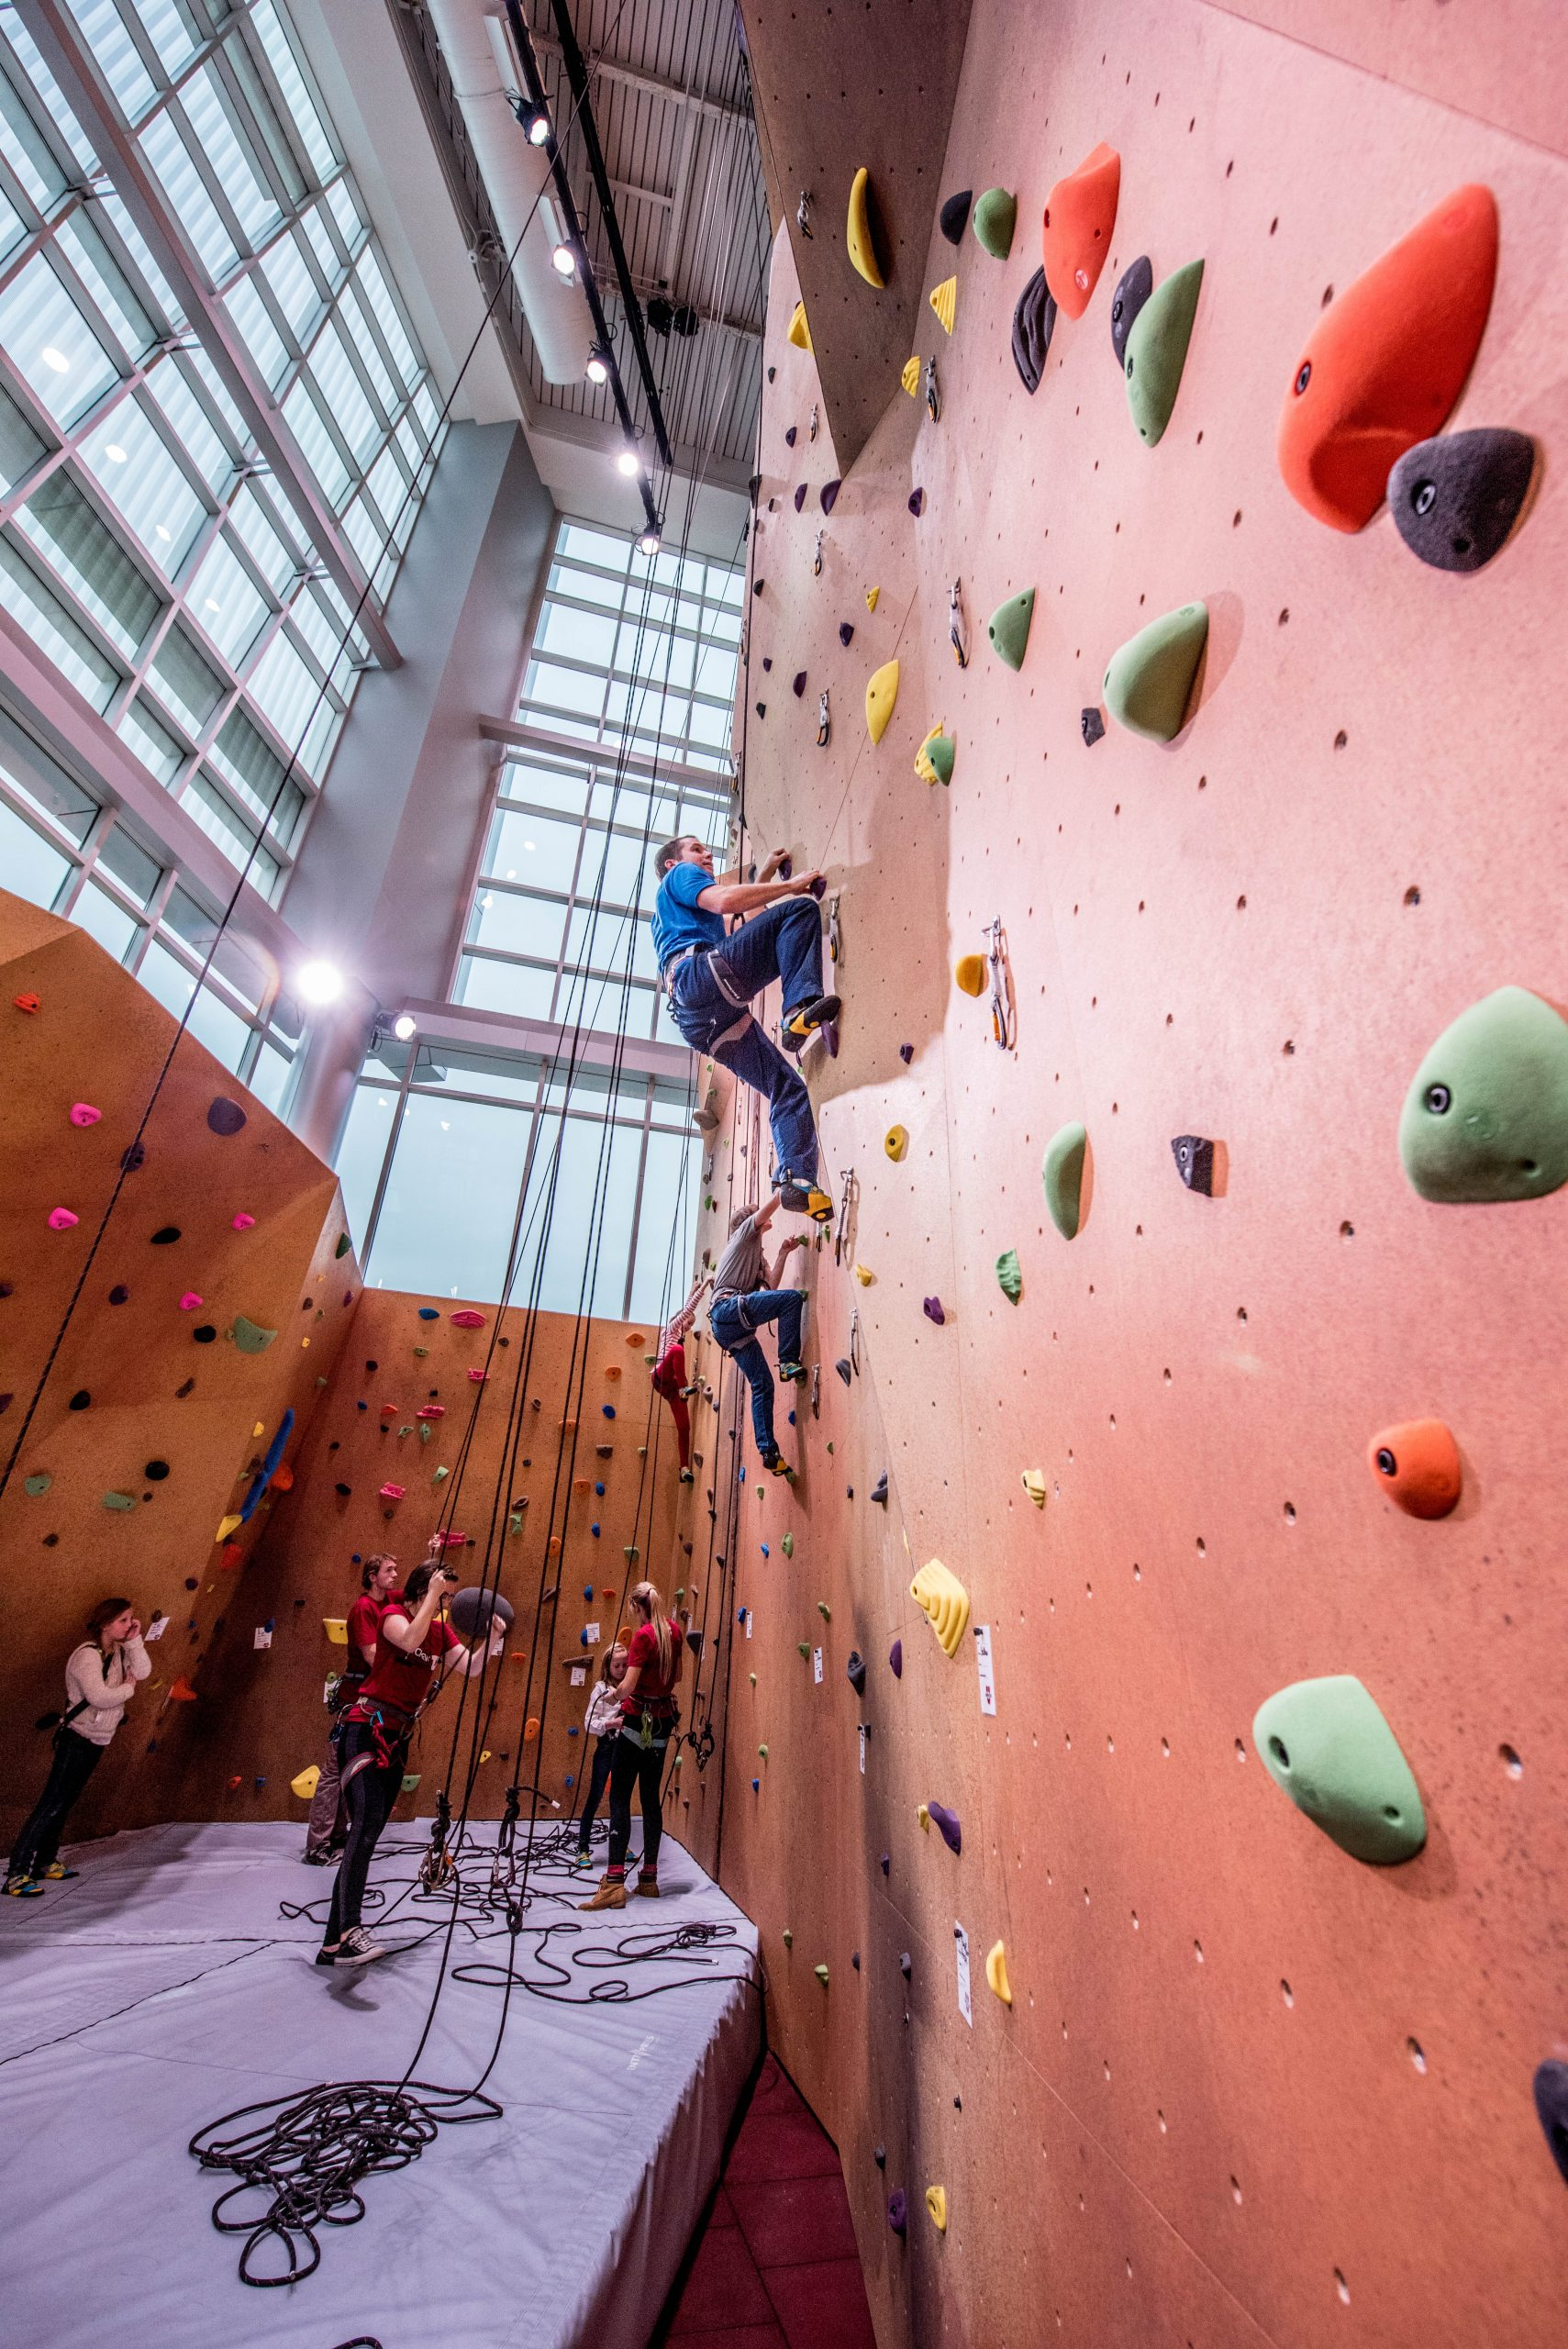 The 54-foot climbing wall and bouldering center at the George S. Eccles Student Life Center is a great way for students and staff to learn climbing and belaying skills as part of their fitness routines.